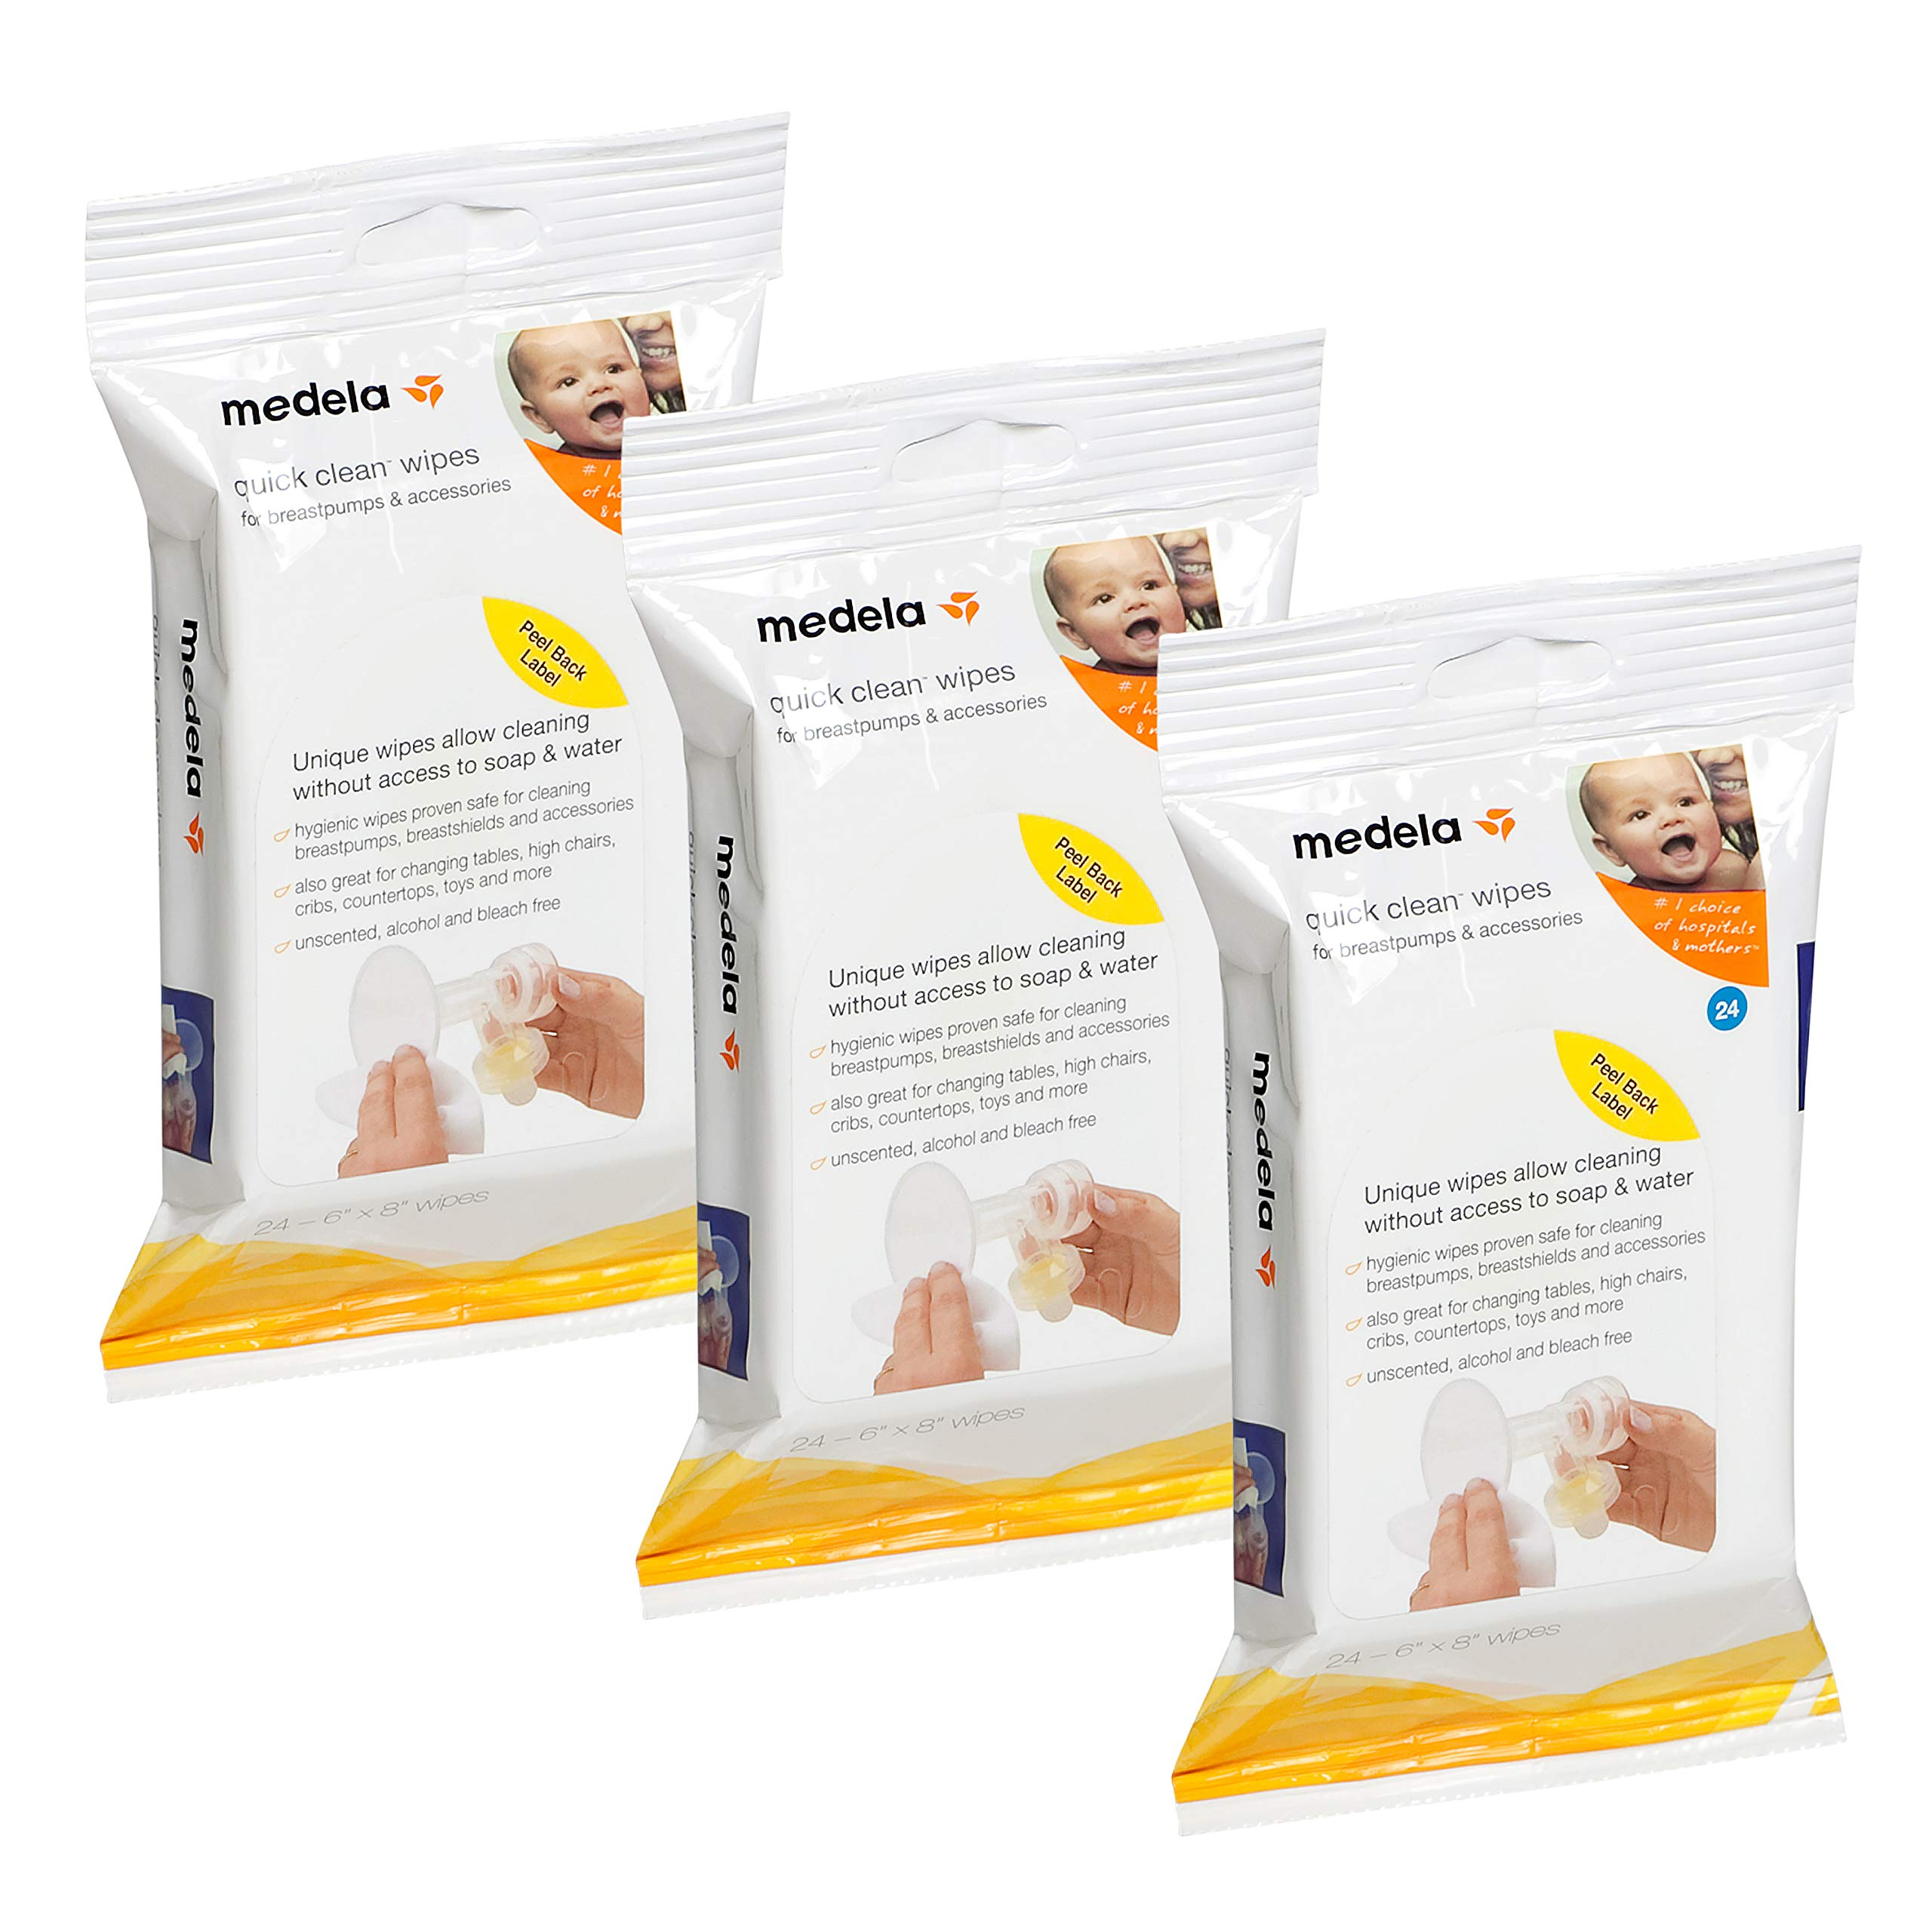 Medela Quick Clean Breast Pump and Accessory Wipes, 72 Wipes in a Resealable Pack, Convenient Portable Cleaning, Hygienic Wipes Safe for Cleaning High Chairs, Tables, Cribs and Countertops by Medela